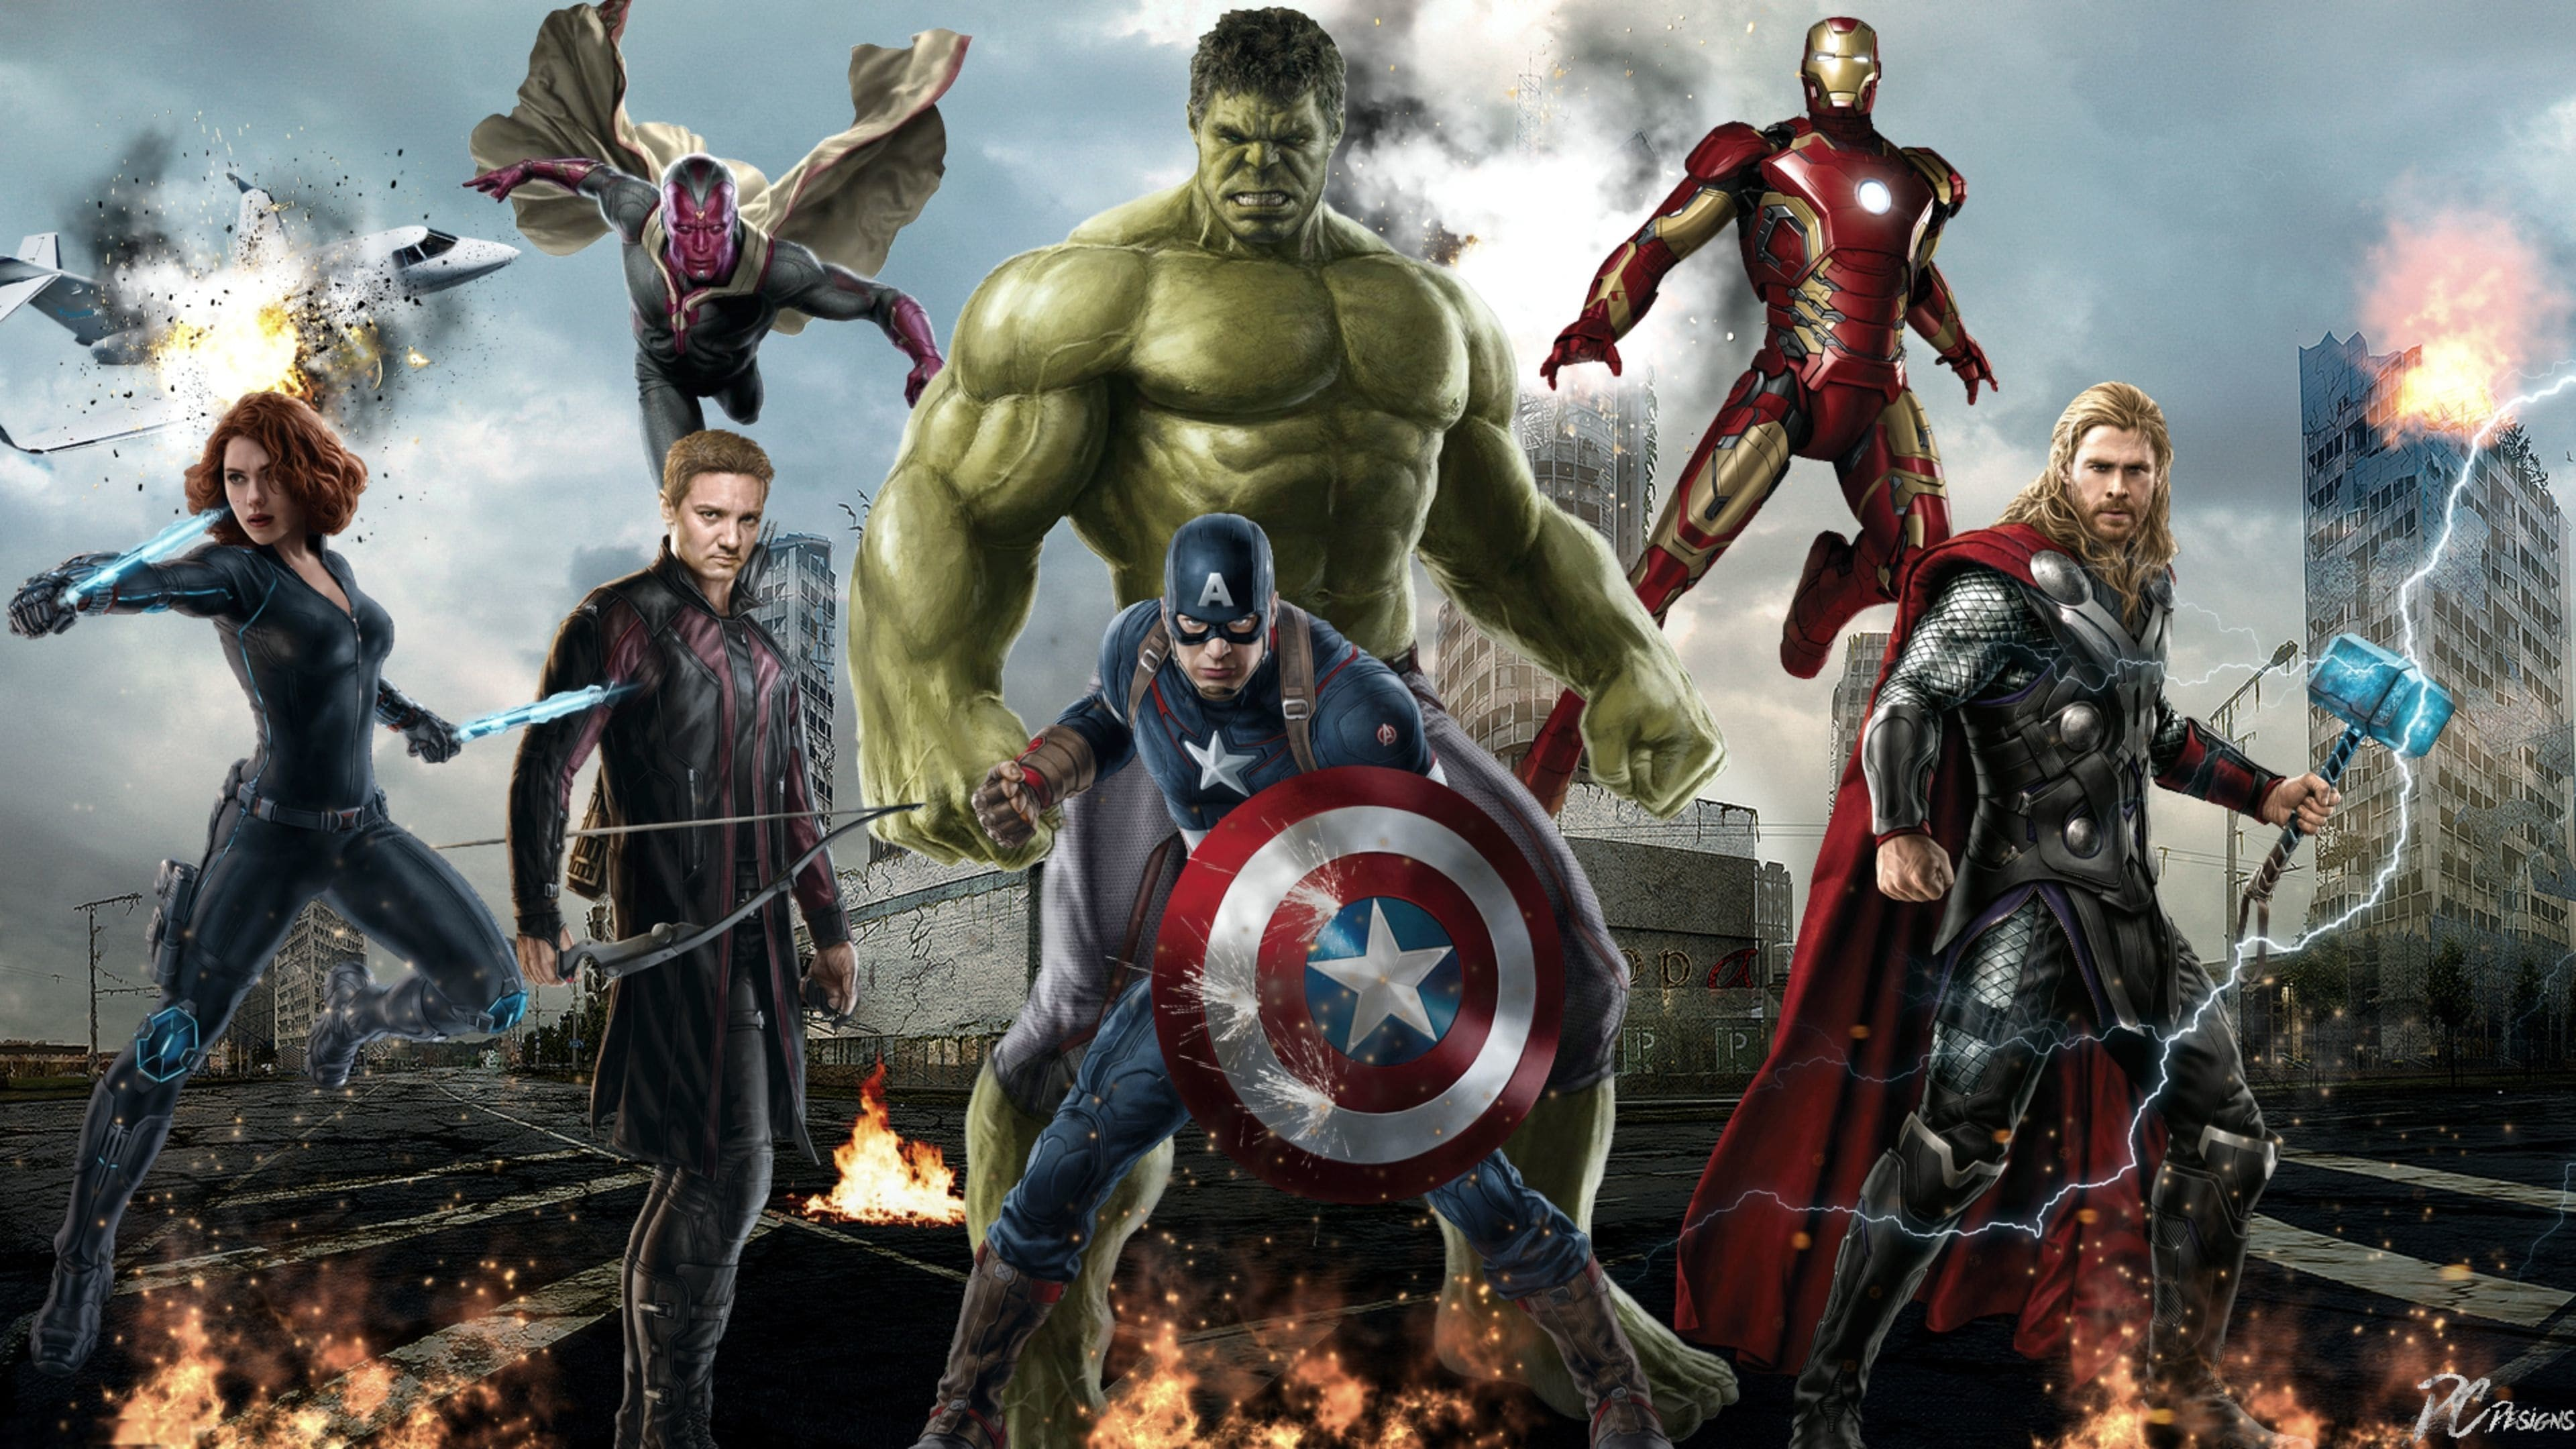 3840x2160 Avengers: Age Of Ultron Desktop wallpapers Avengers: Age Of Ultron  Background